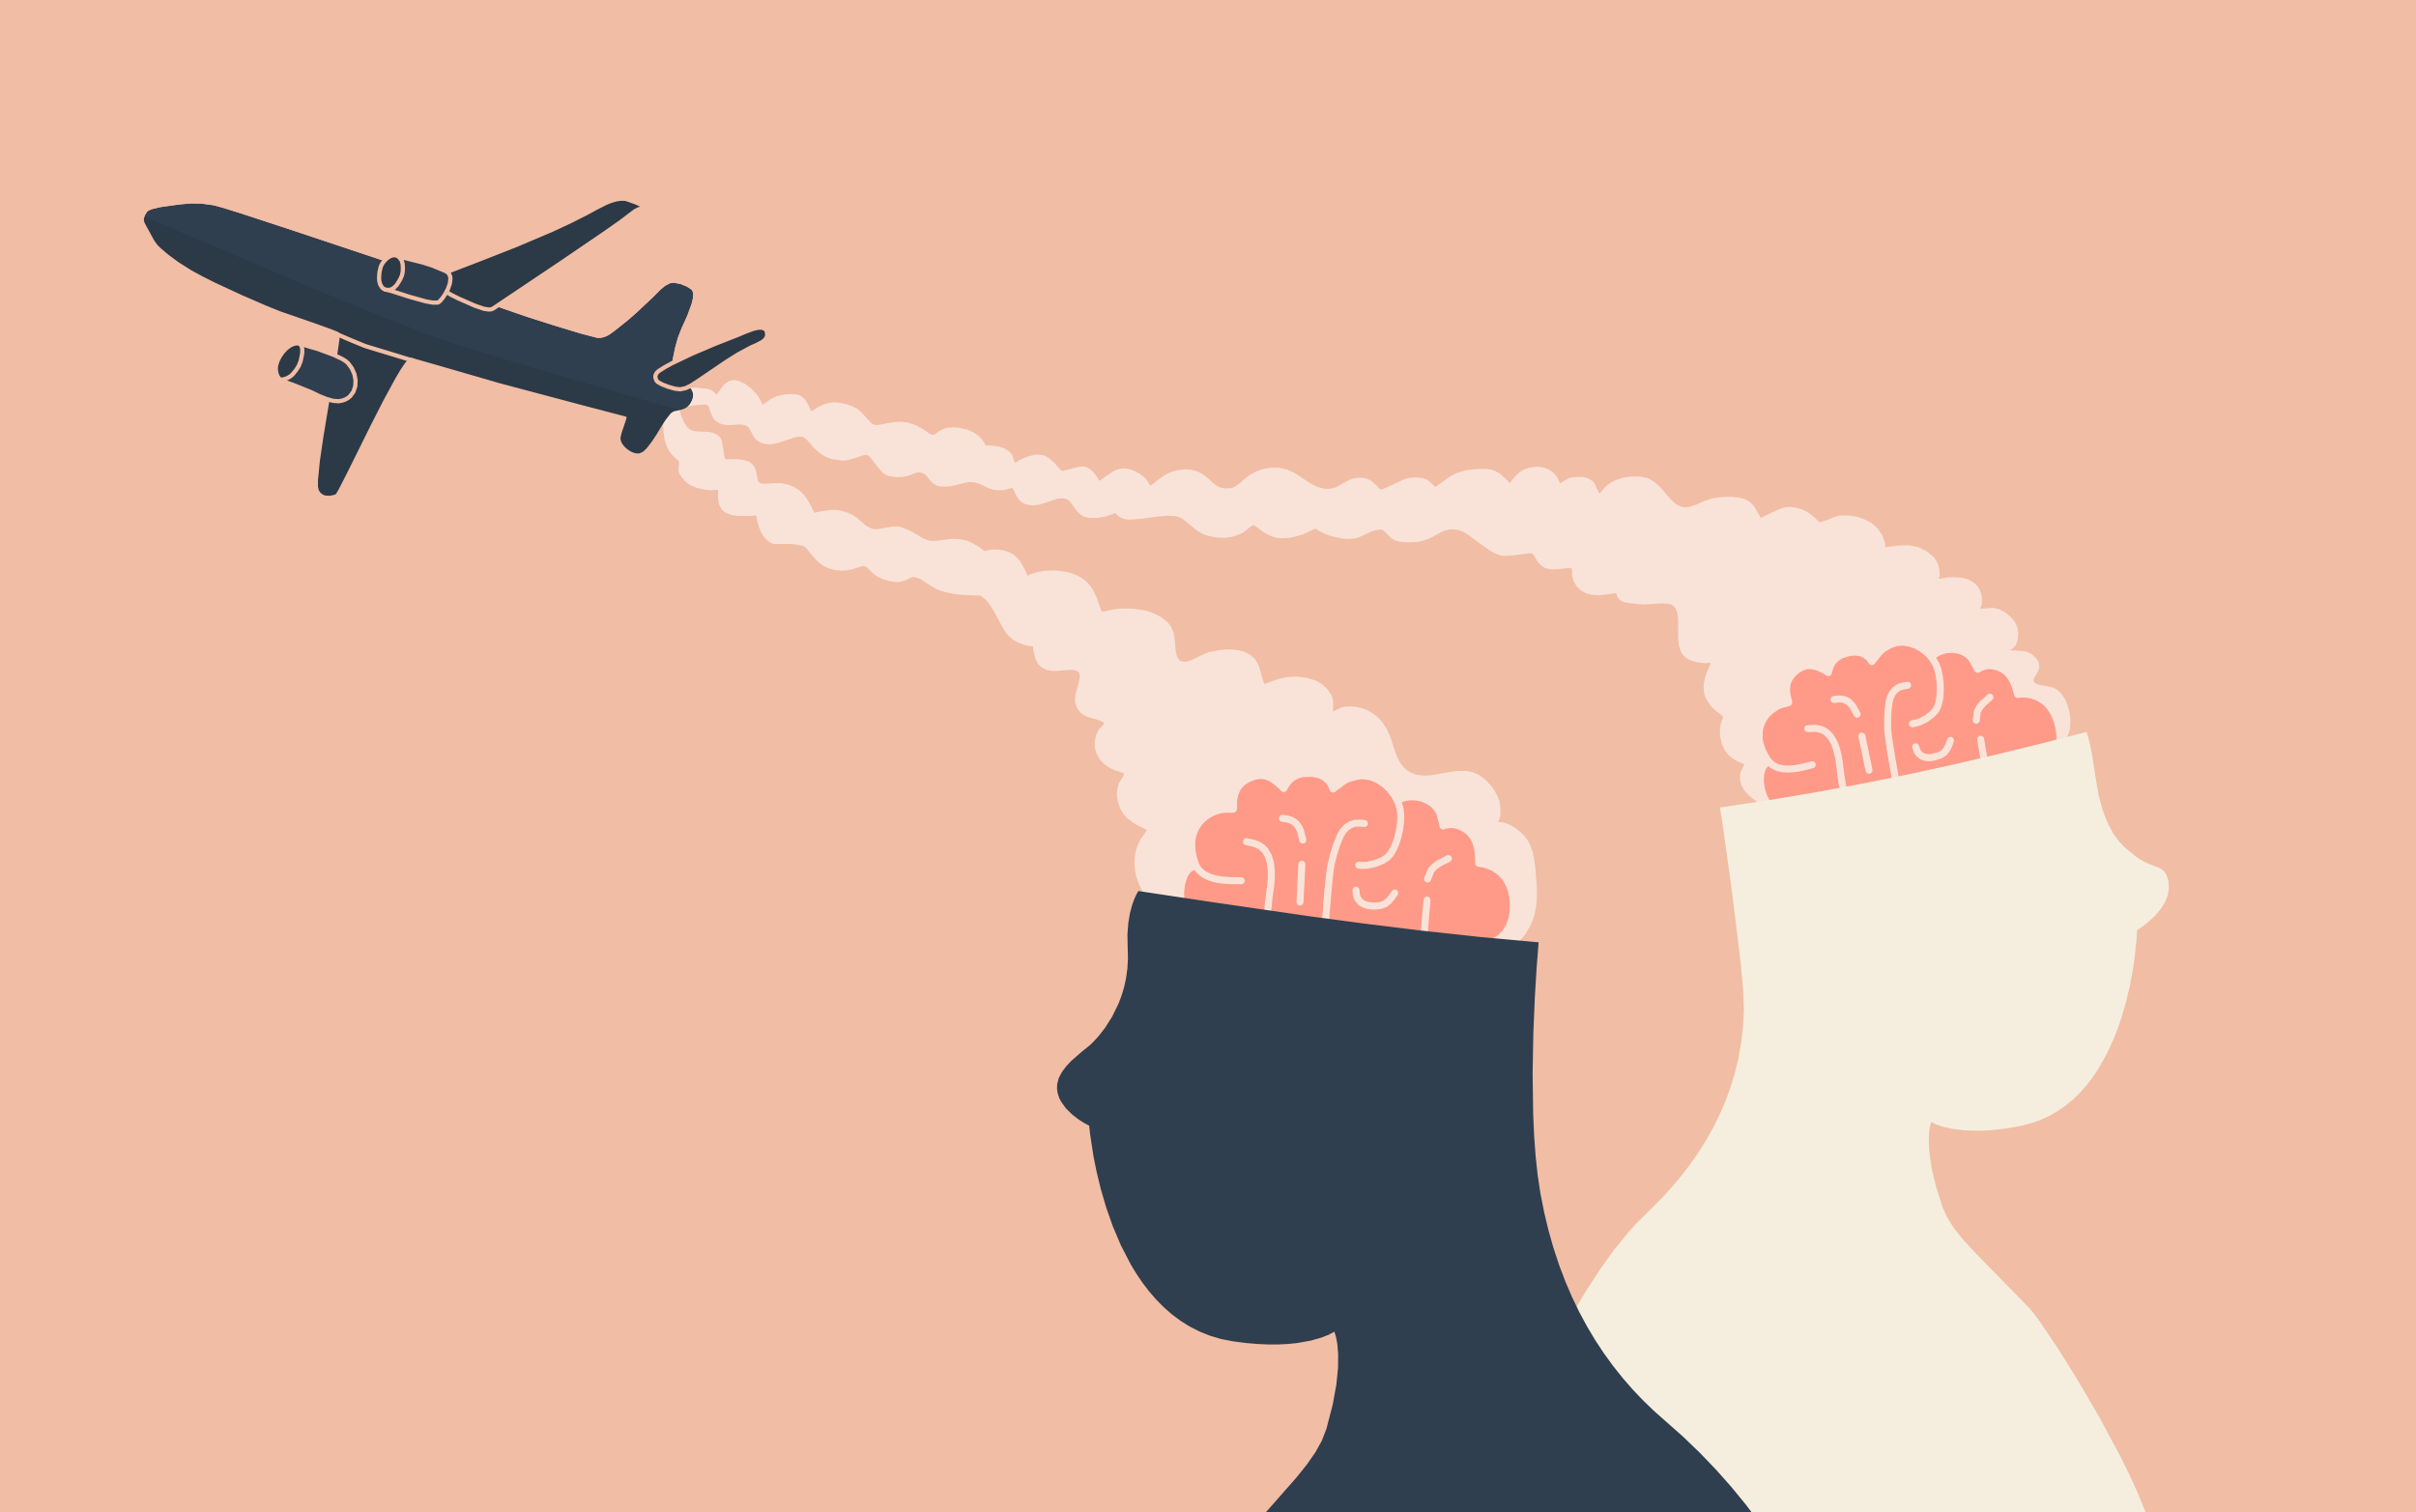 Illustration for a VICE News article on Chemtrails.